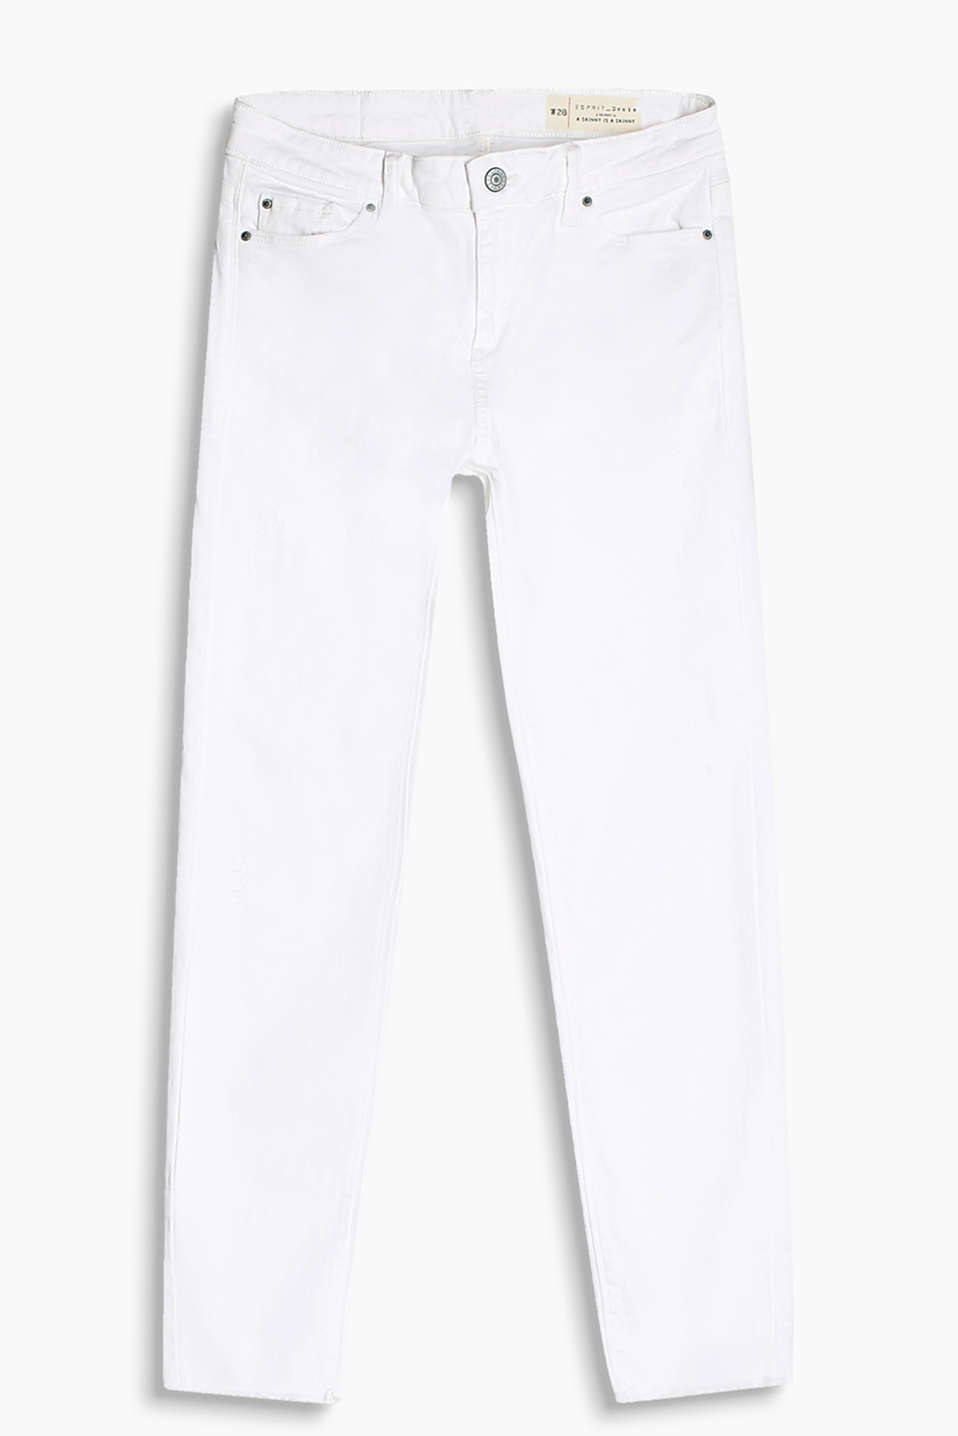 White stretch jeans with vintage effects and frayed hems